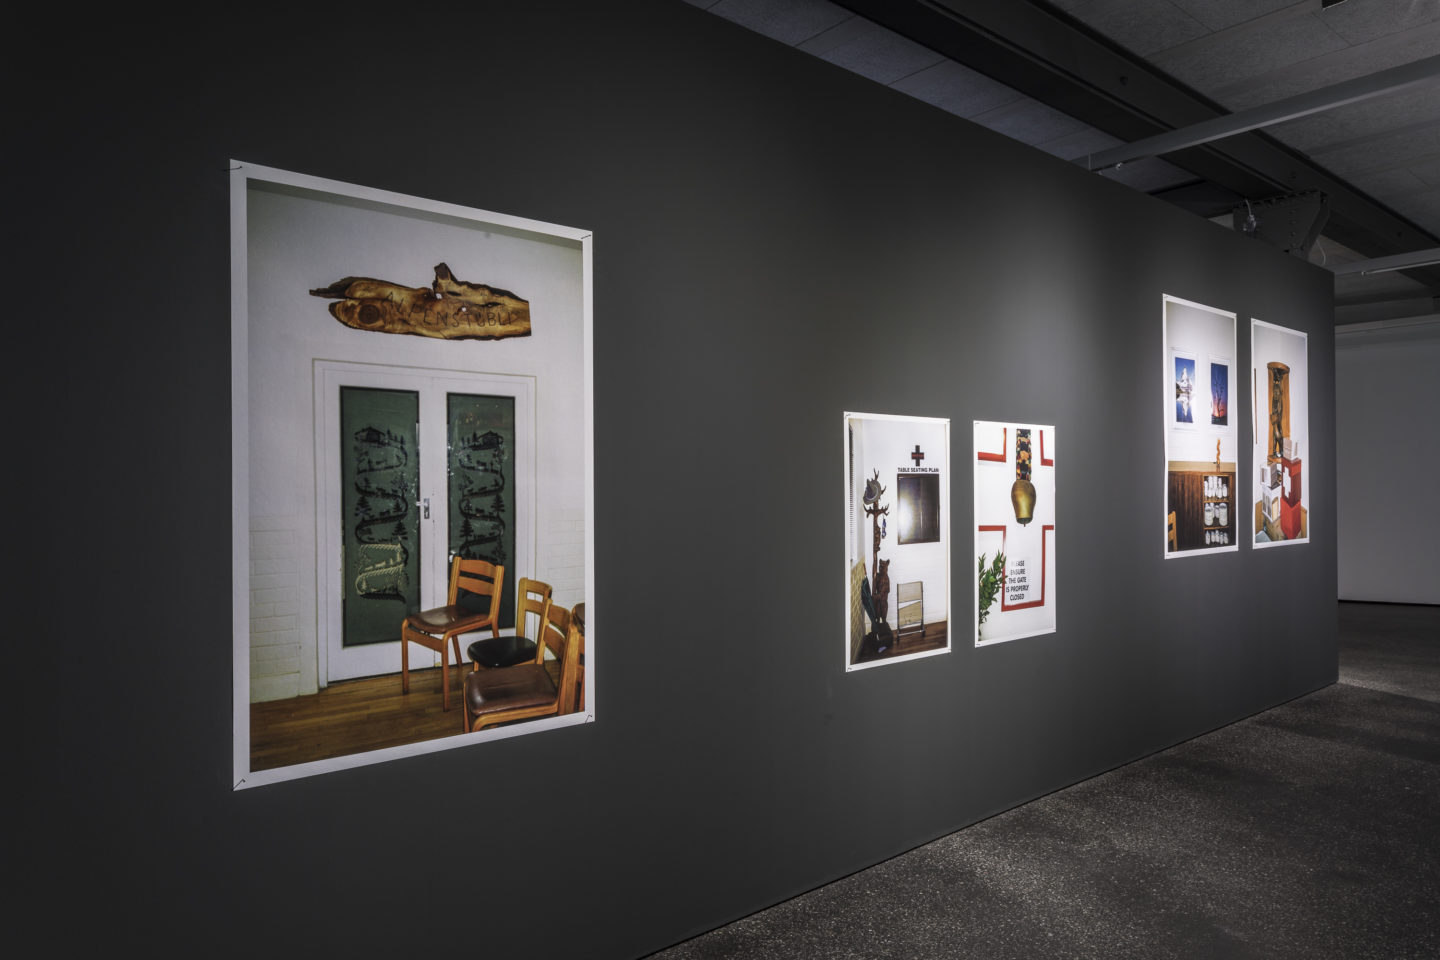 Exhibition View Denise Bertschi and Inas Halabi Groupshow «Forever or in a Hundred Years» at *ALTEFABRIK, Rapperswil-Jona / Photo: Peter Baracchi / Courtesy: the artists